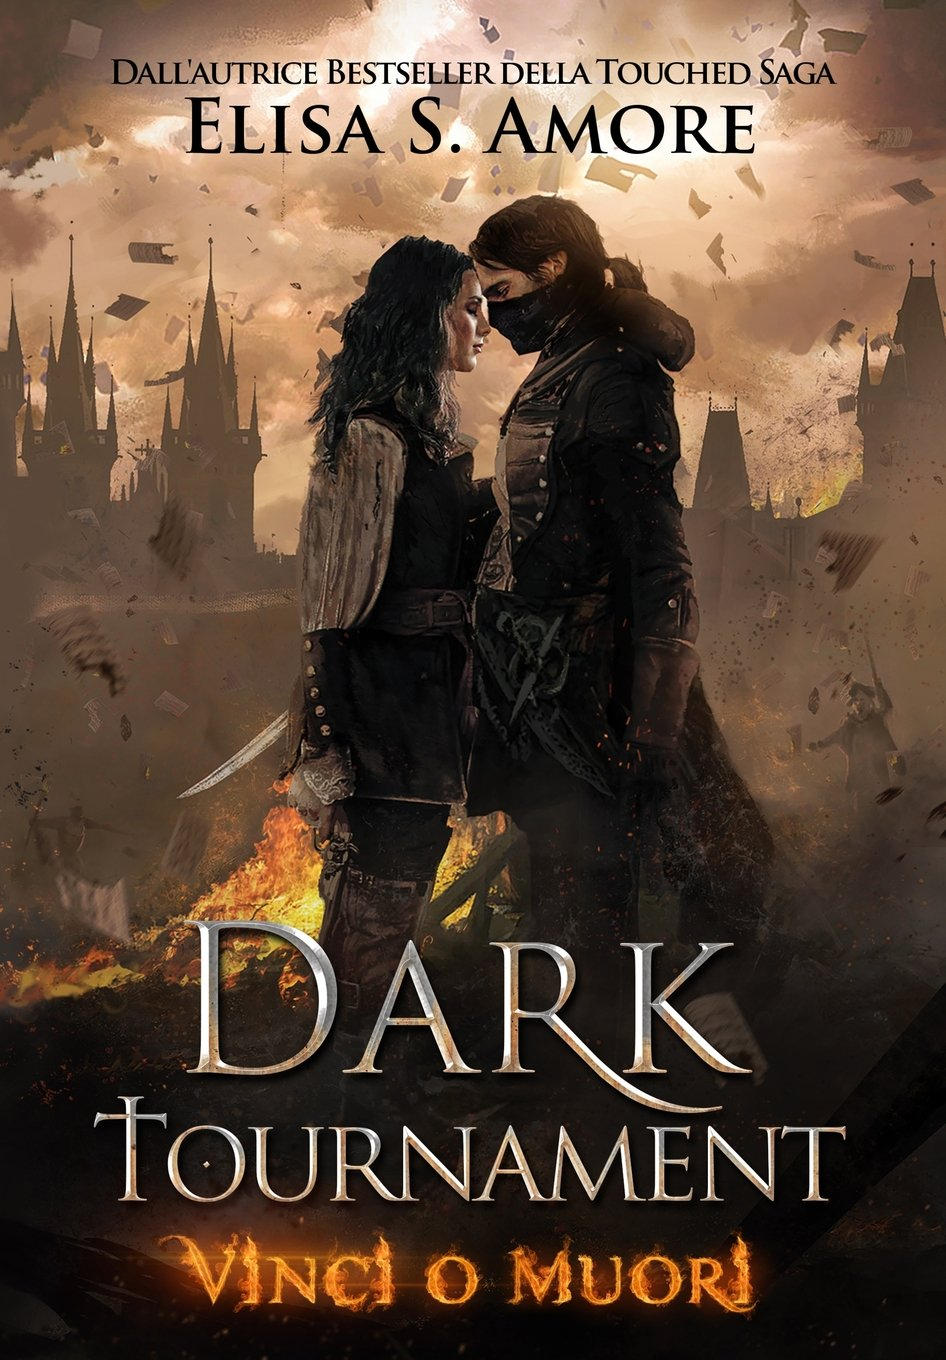 Dark Tournament: Vinci o Muori Copertina rigida – 20 giu 2018 Elisa S. Amore Elisa Strazzanti 1947425056 FICTION / Romance / Fantasy